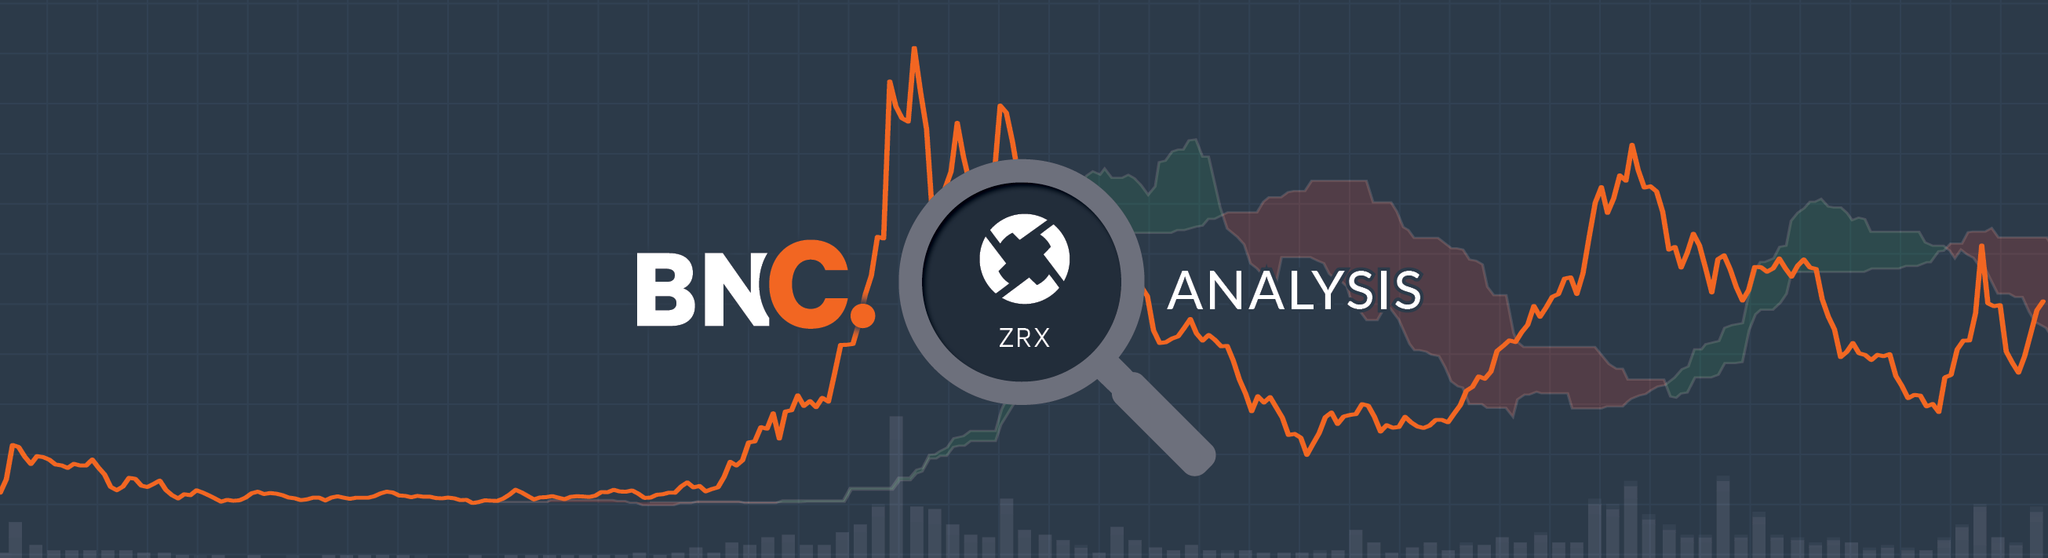 0x Price Analysis - Use cases in the pipeline » Brave New Coin